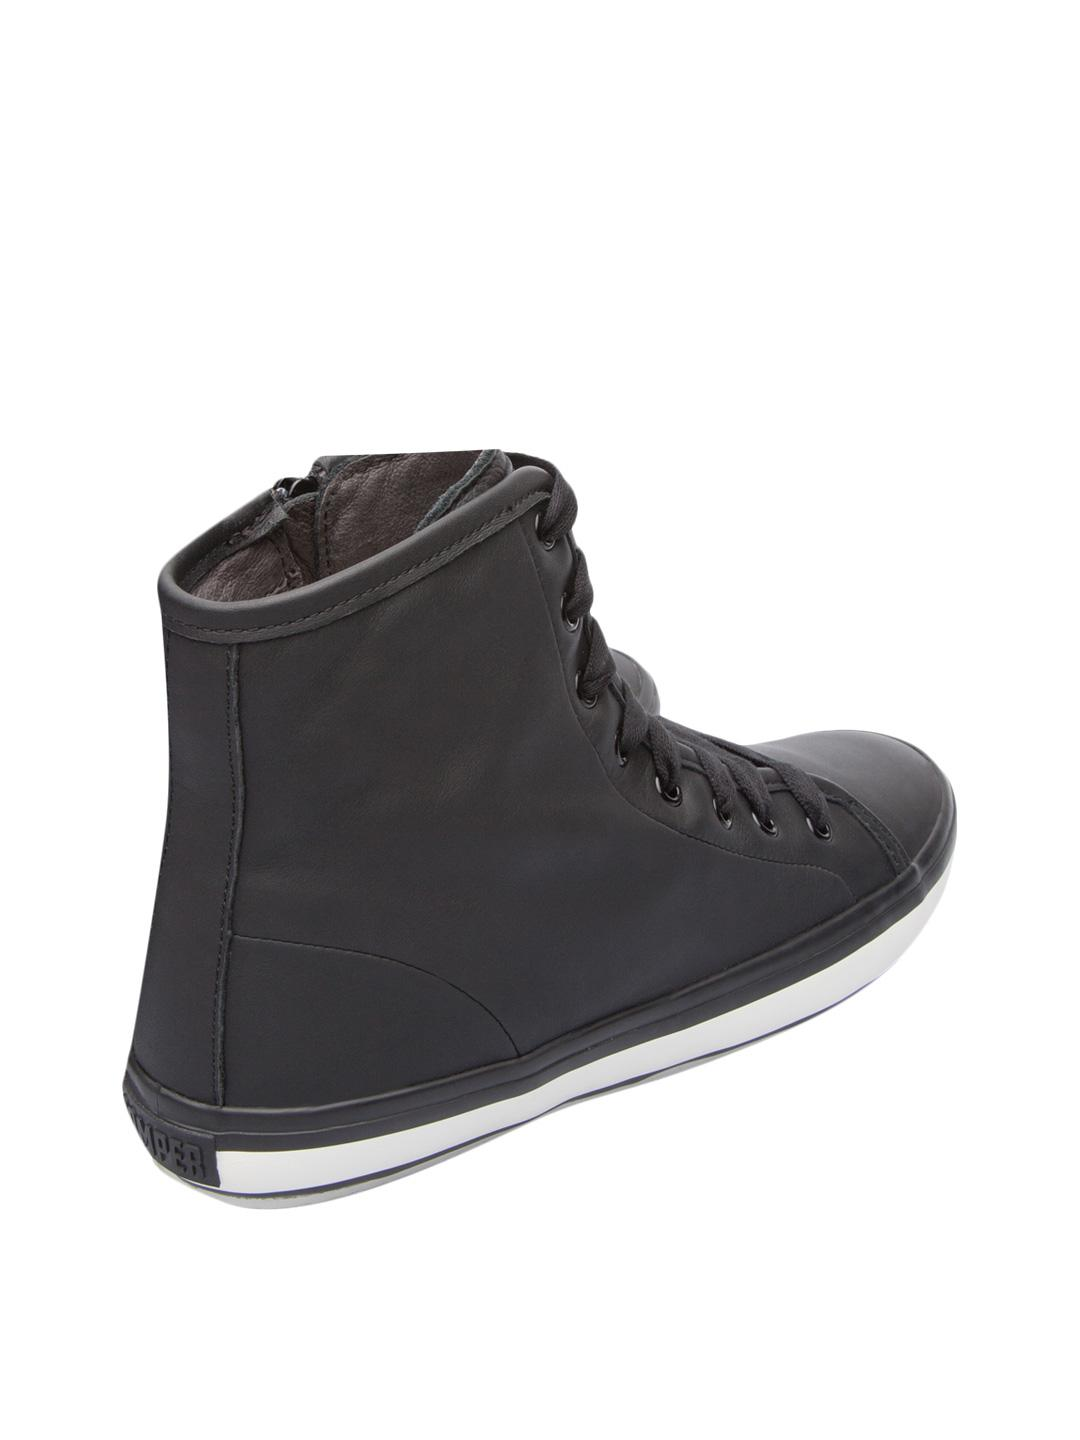 Camper Velvet High-Top Sneakers clearance how much cheap low shipping outlet discounts free shipping finishline pick a best cheap price 3cCUB